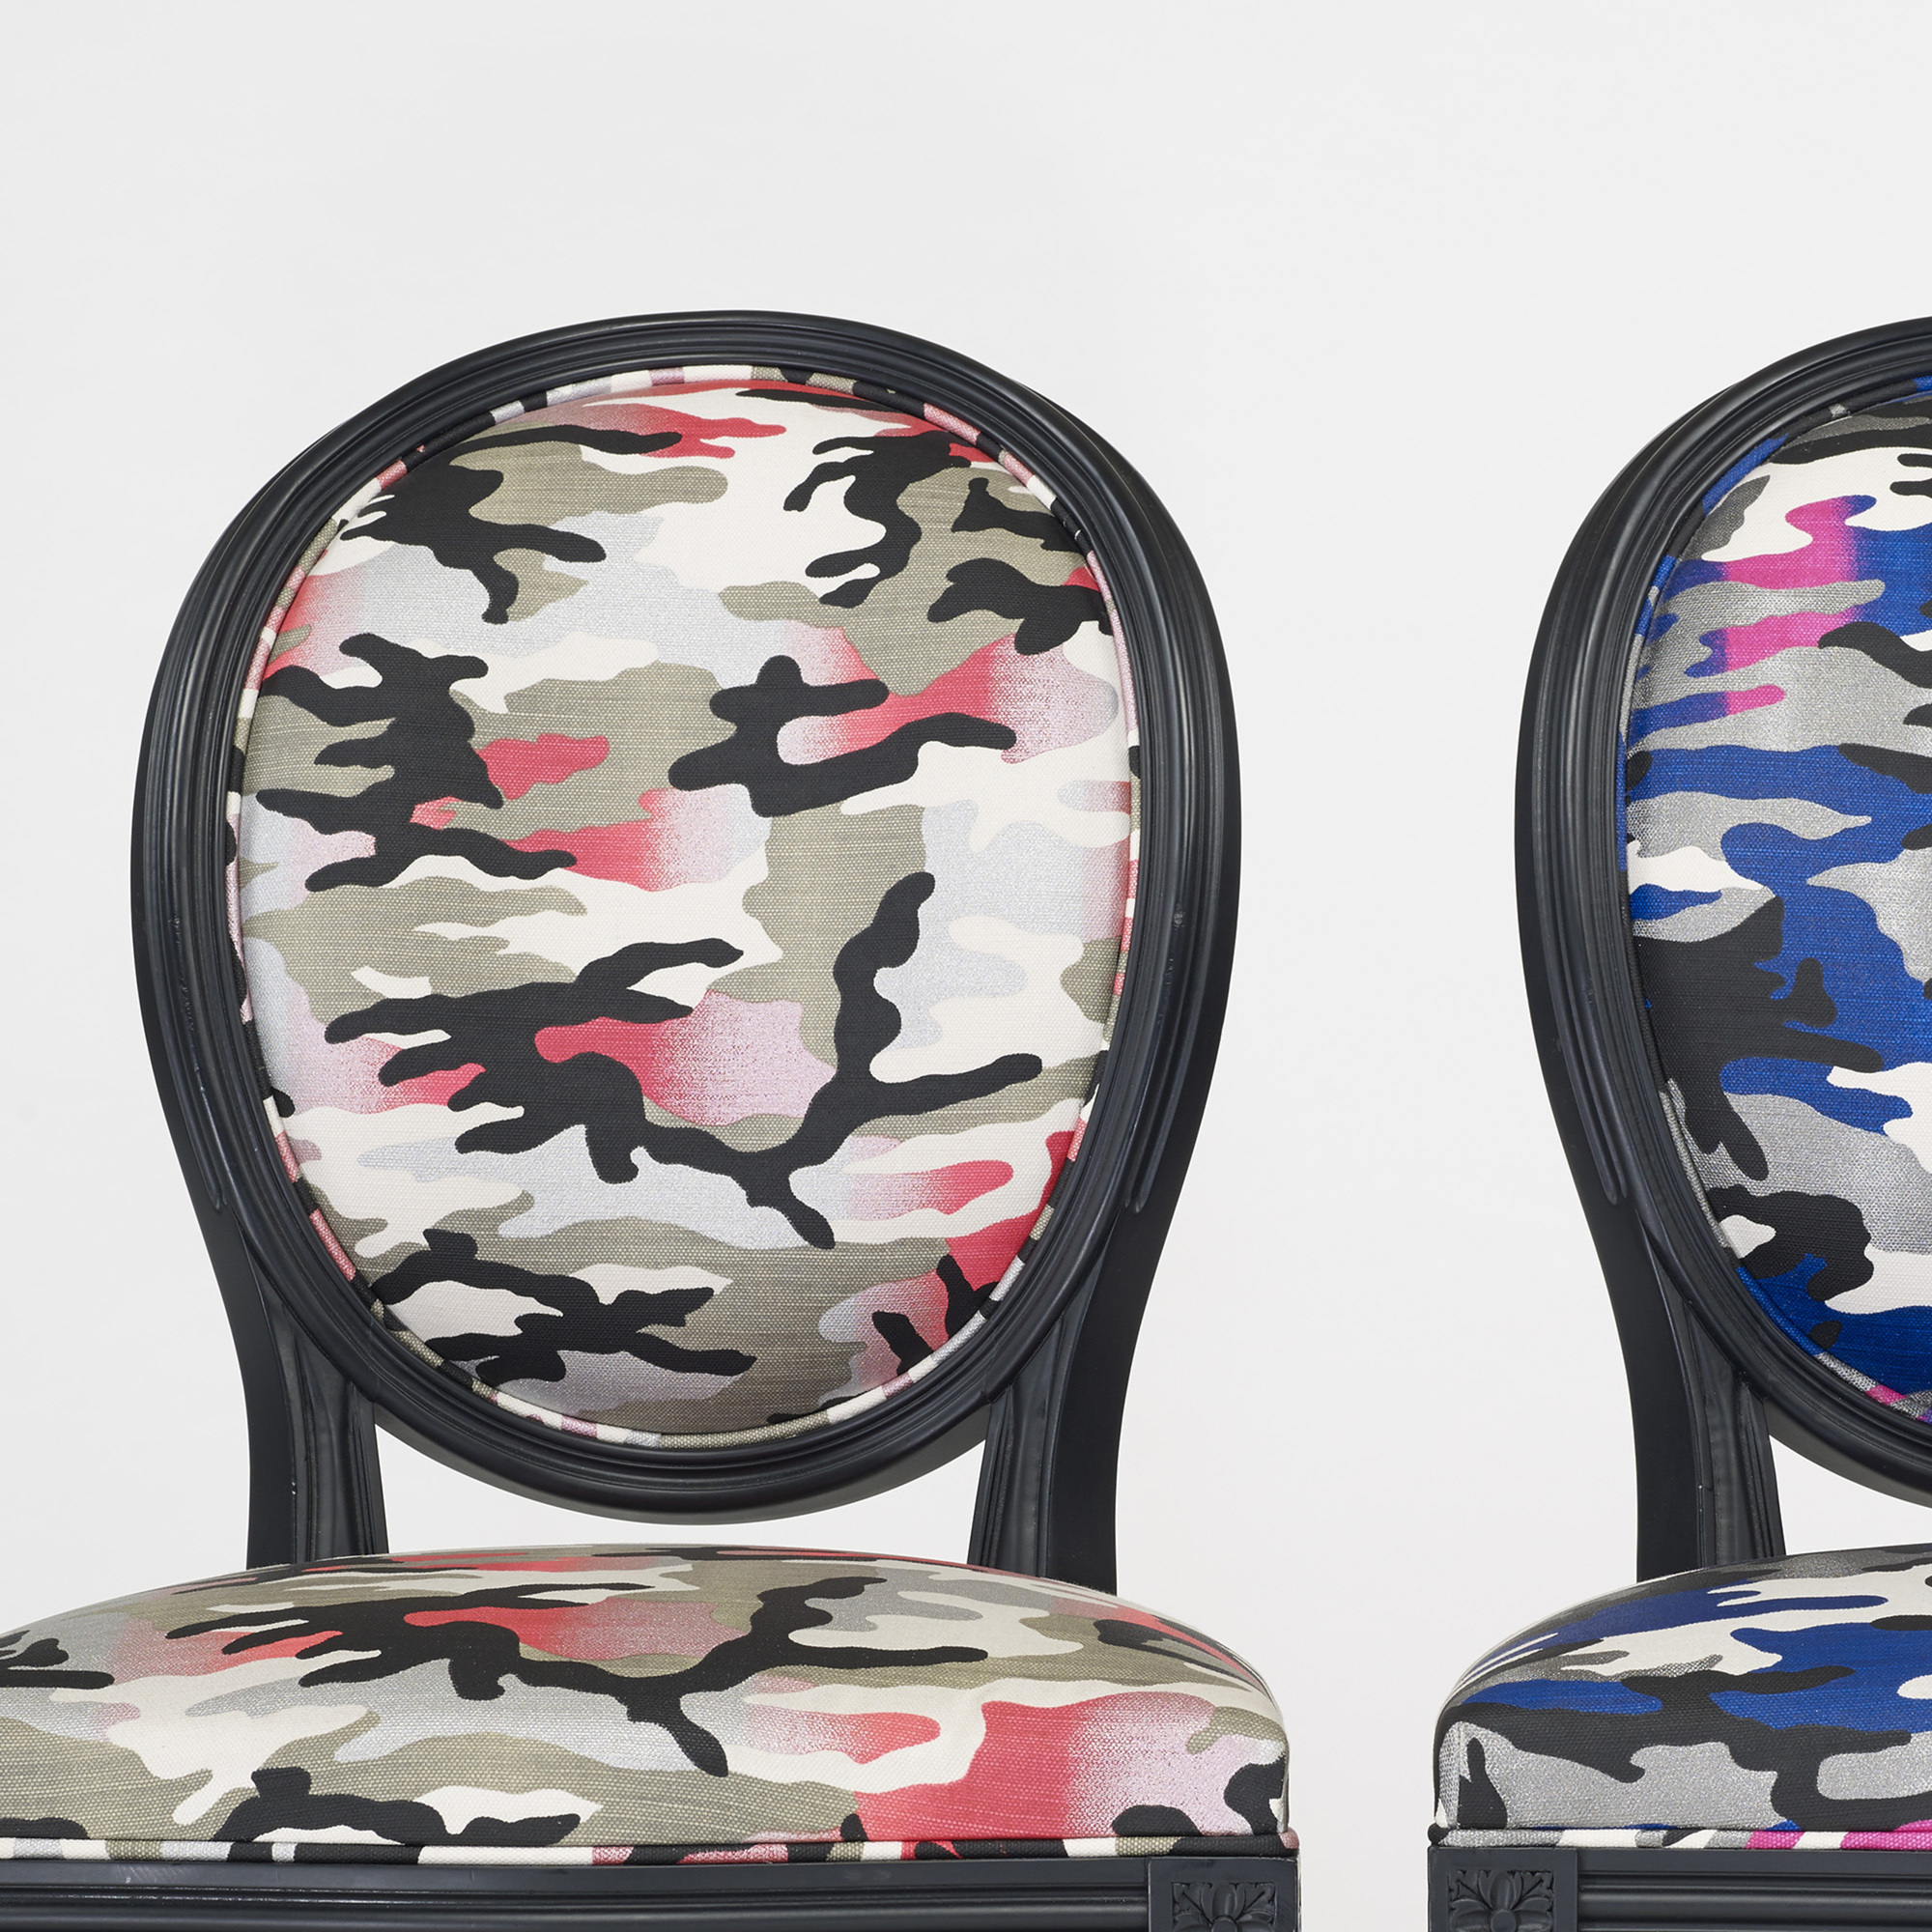 266: Anselm Reyle for Dior / custom Louis XVI chairs, pair (3 of 3)